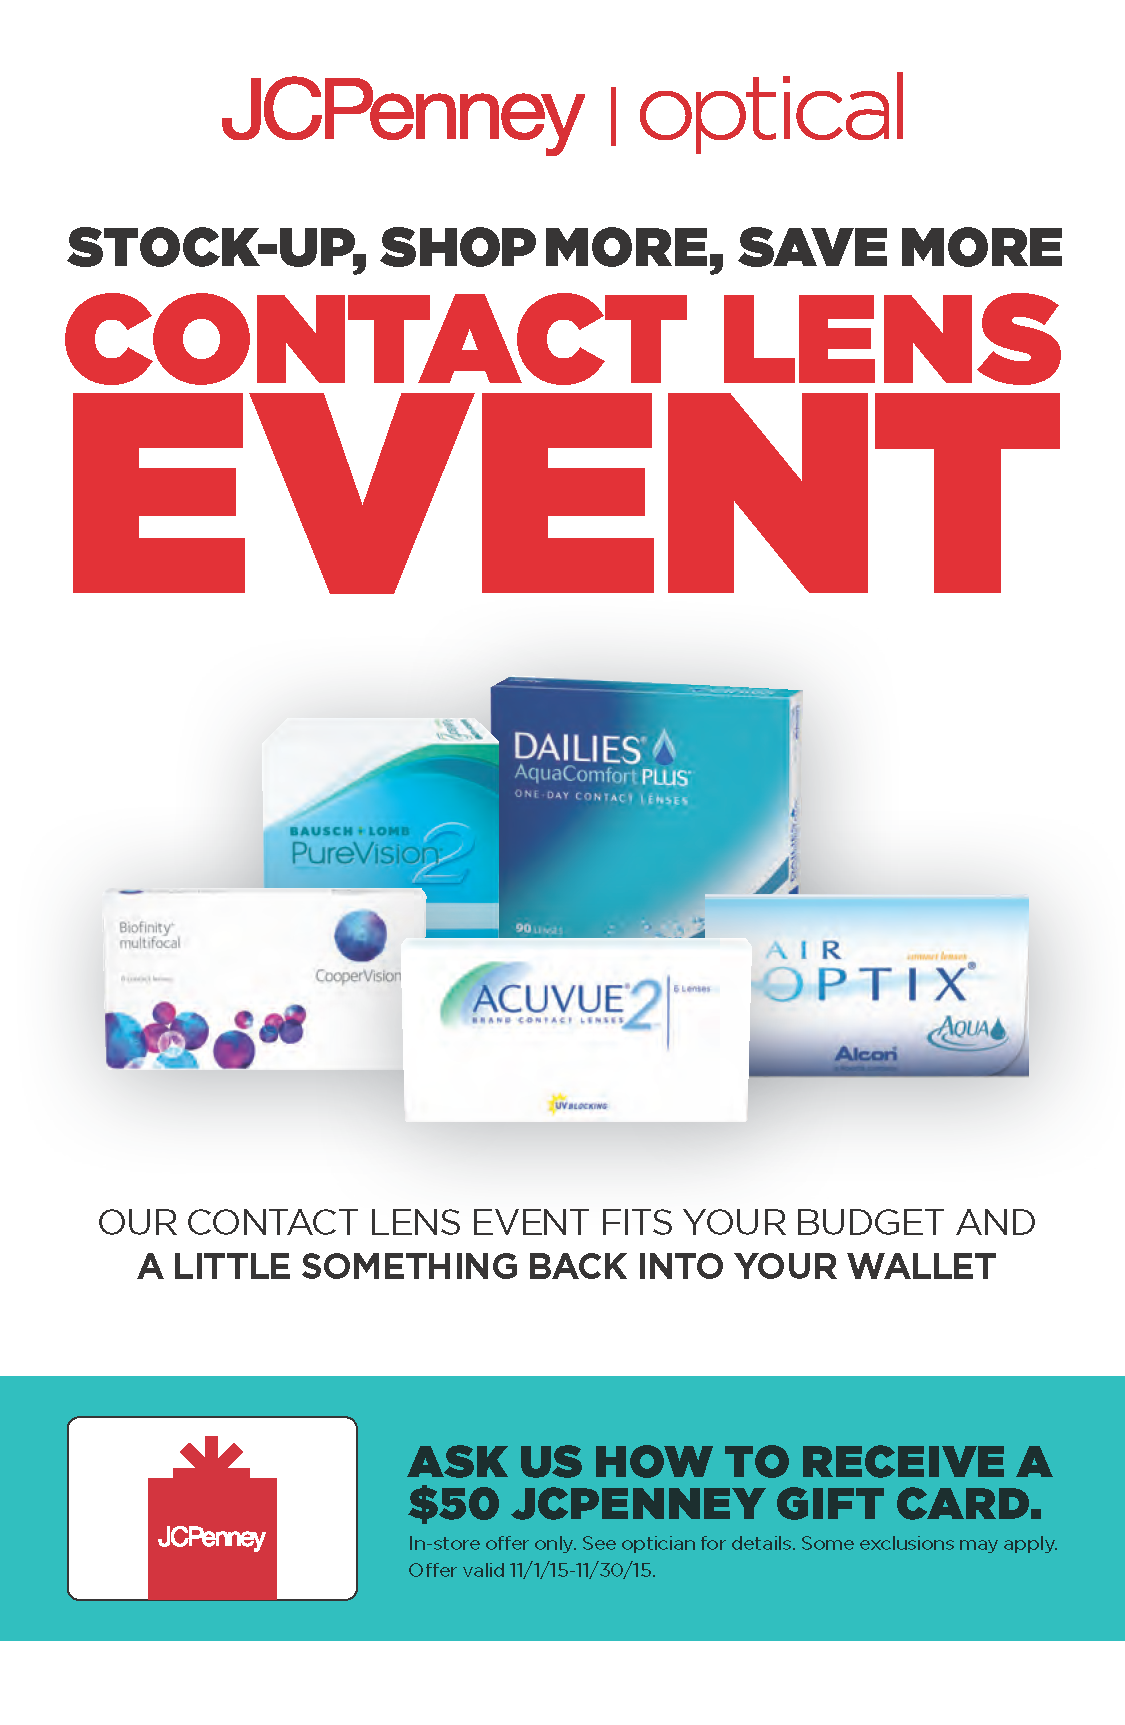 Contact Lens Event